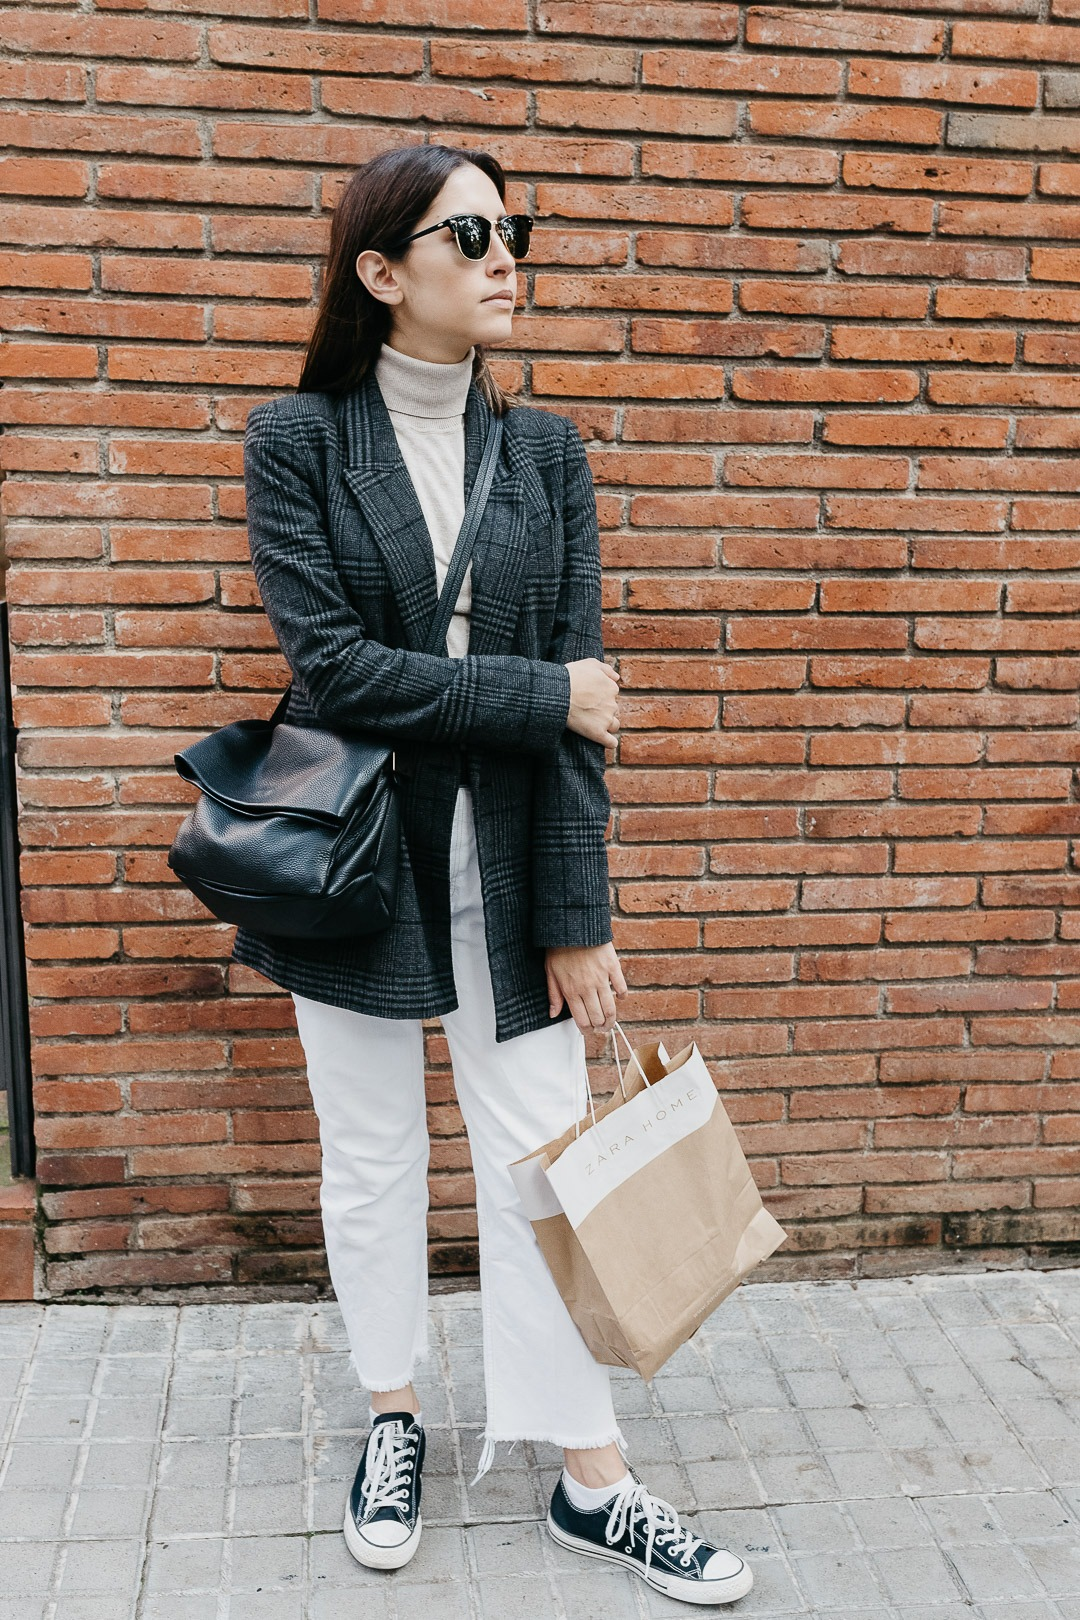 Trends I'm Loving This Fall